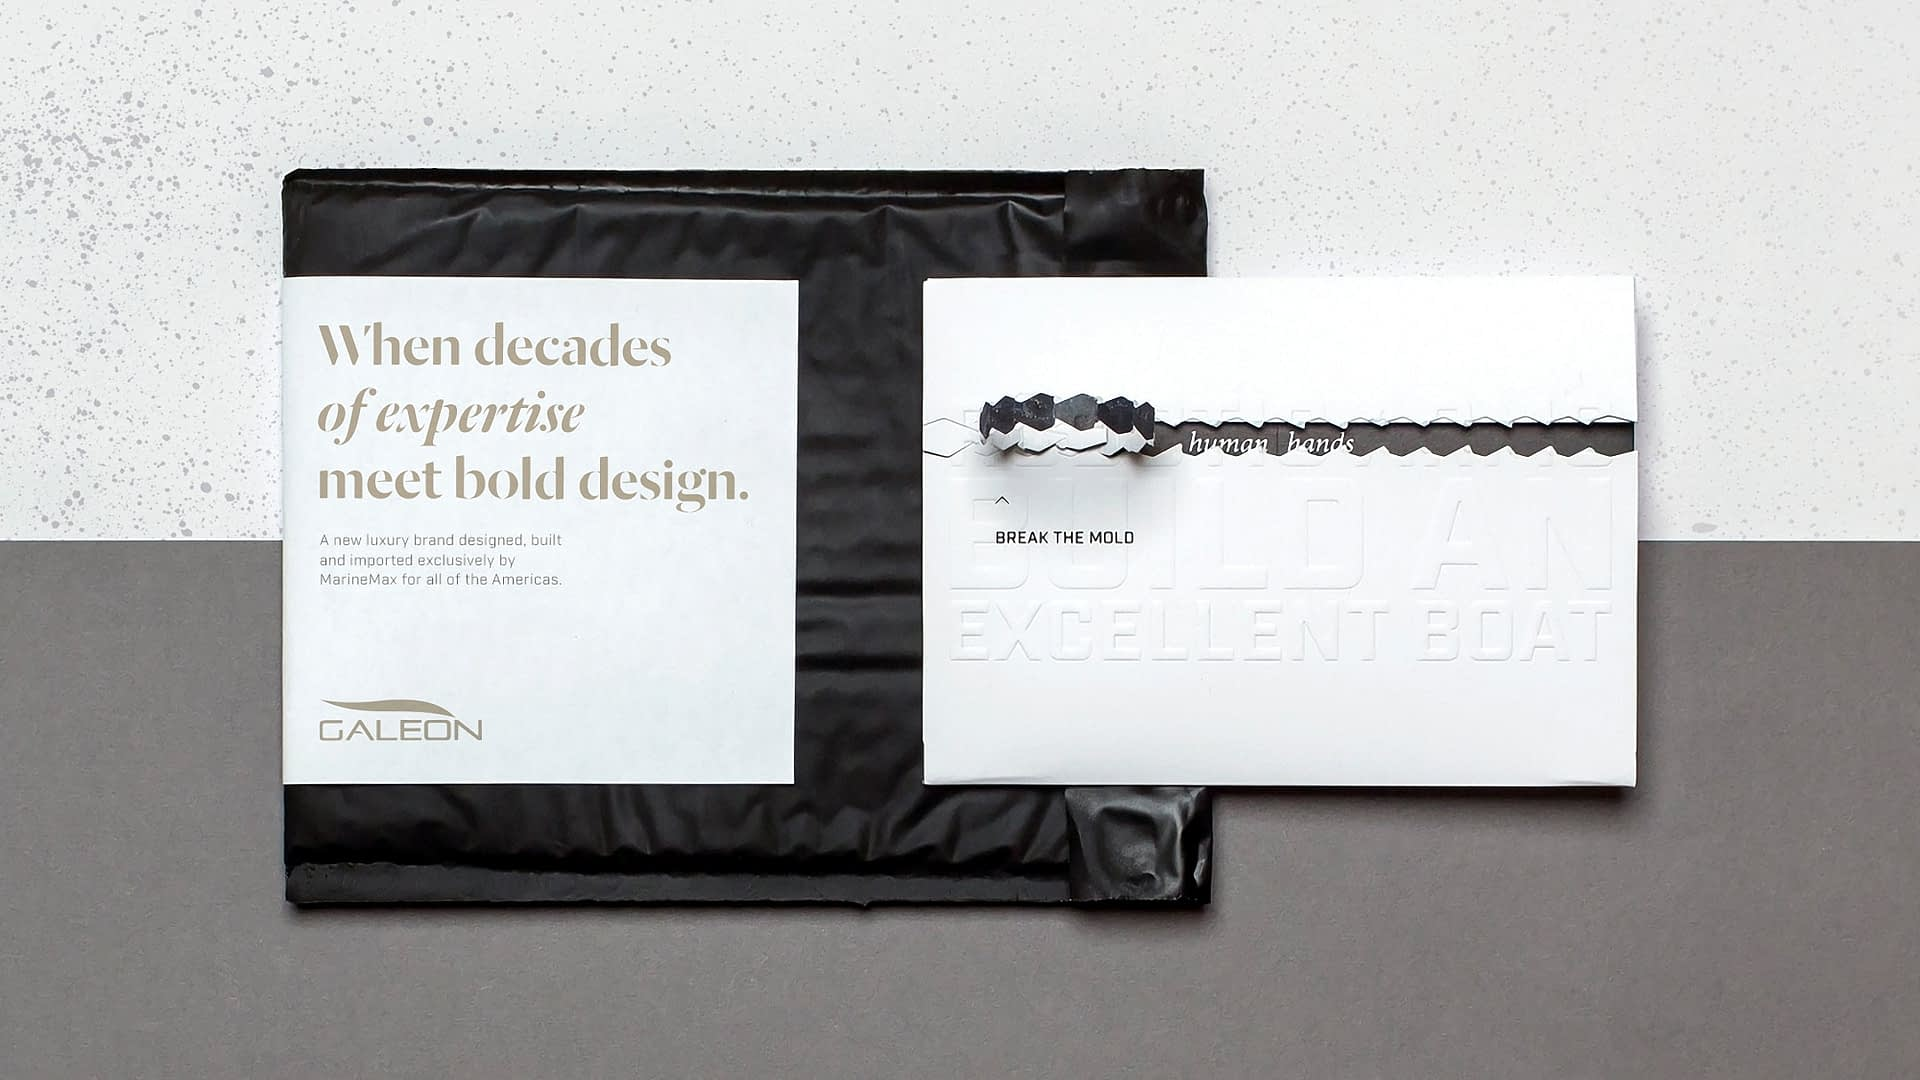 Galeon Yachts packaging created for their break the mold yacht campaign.